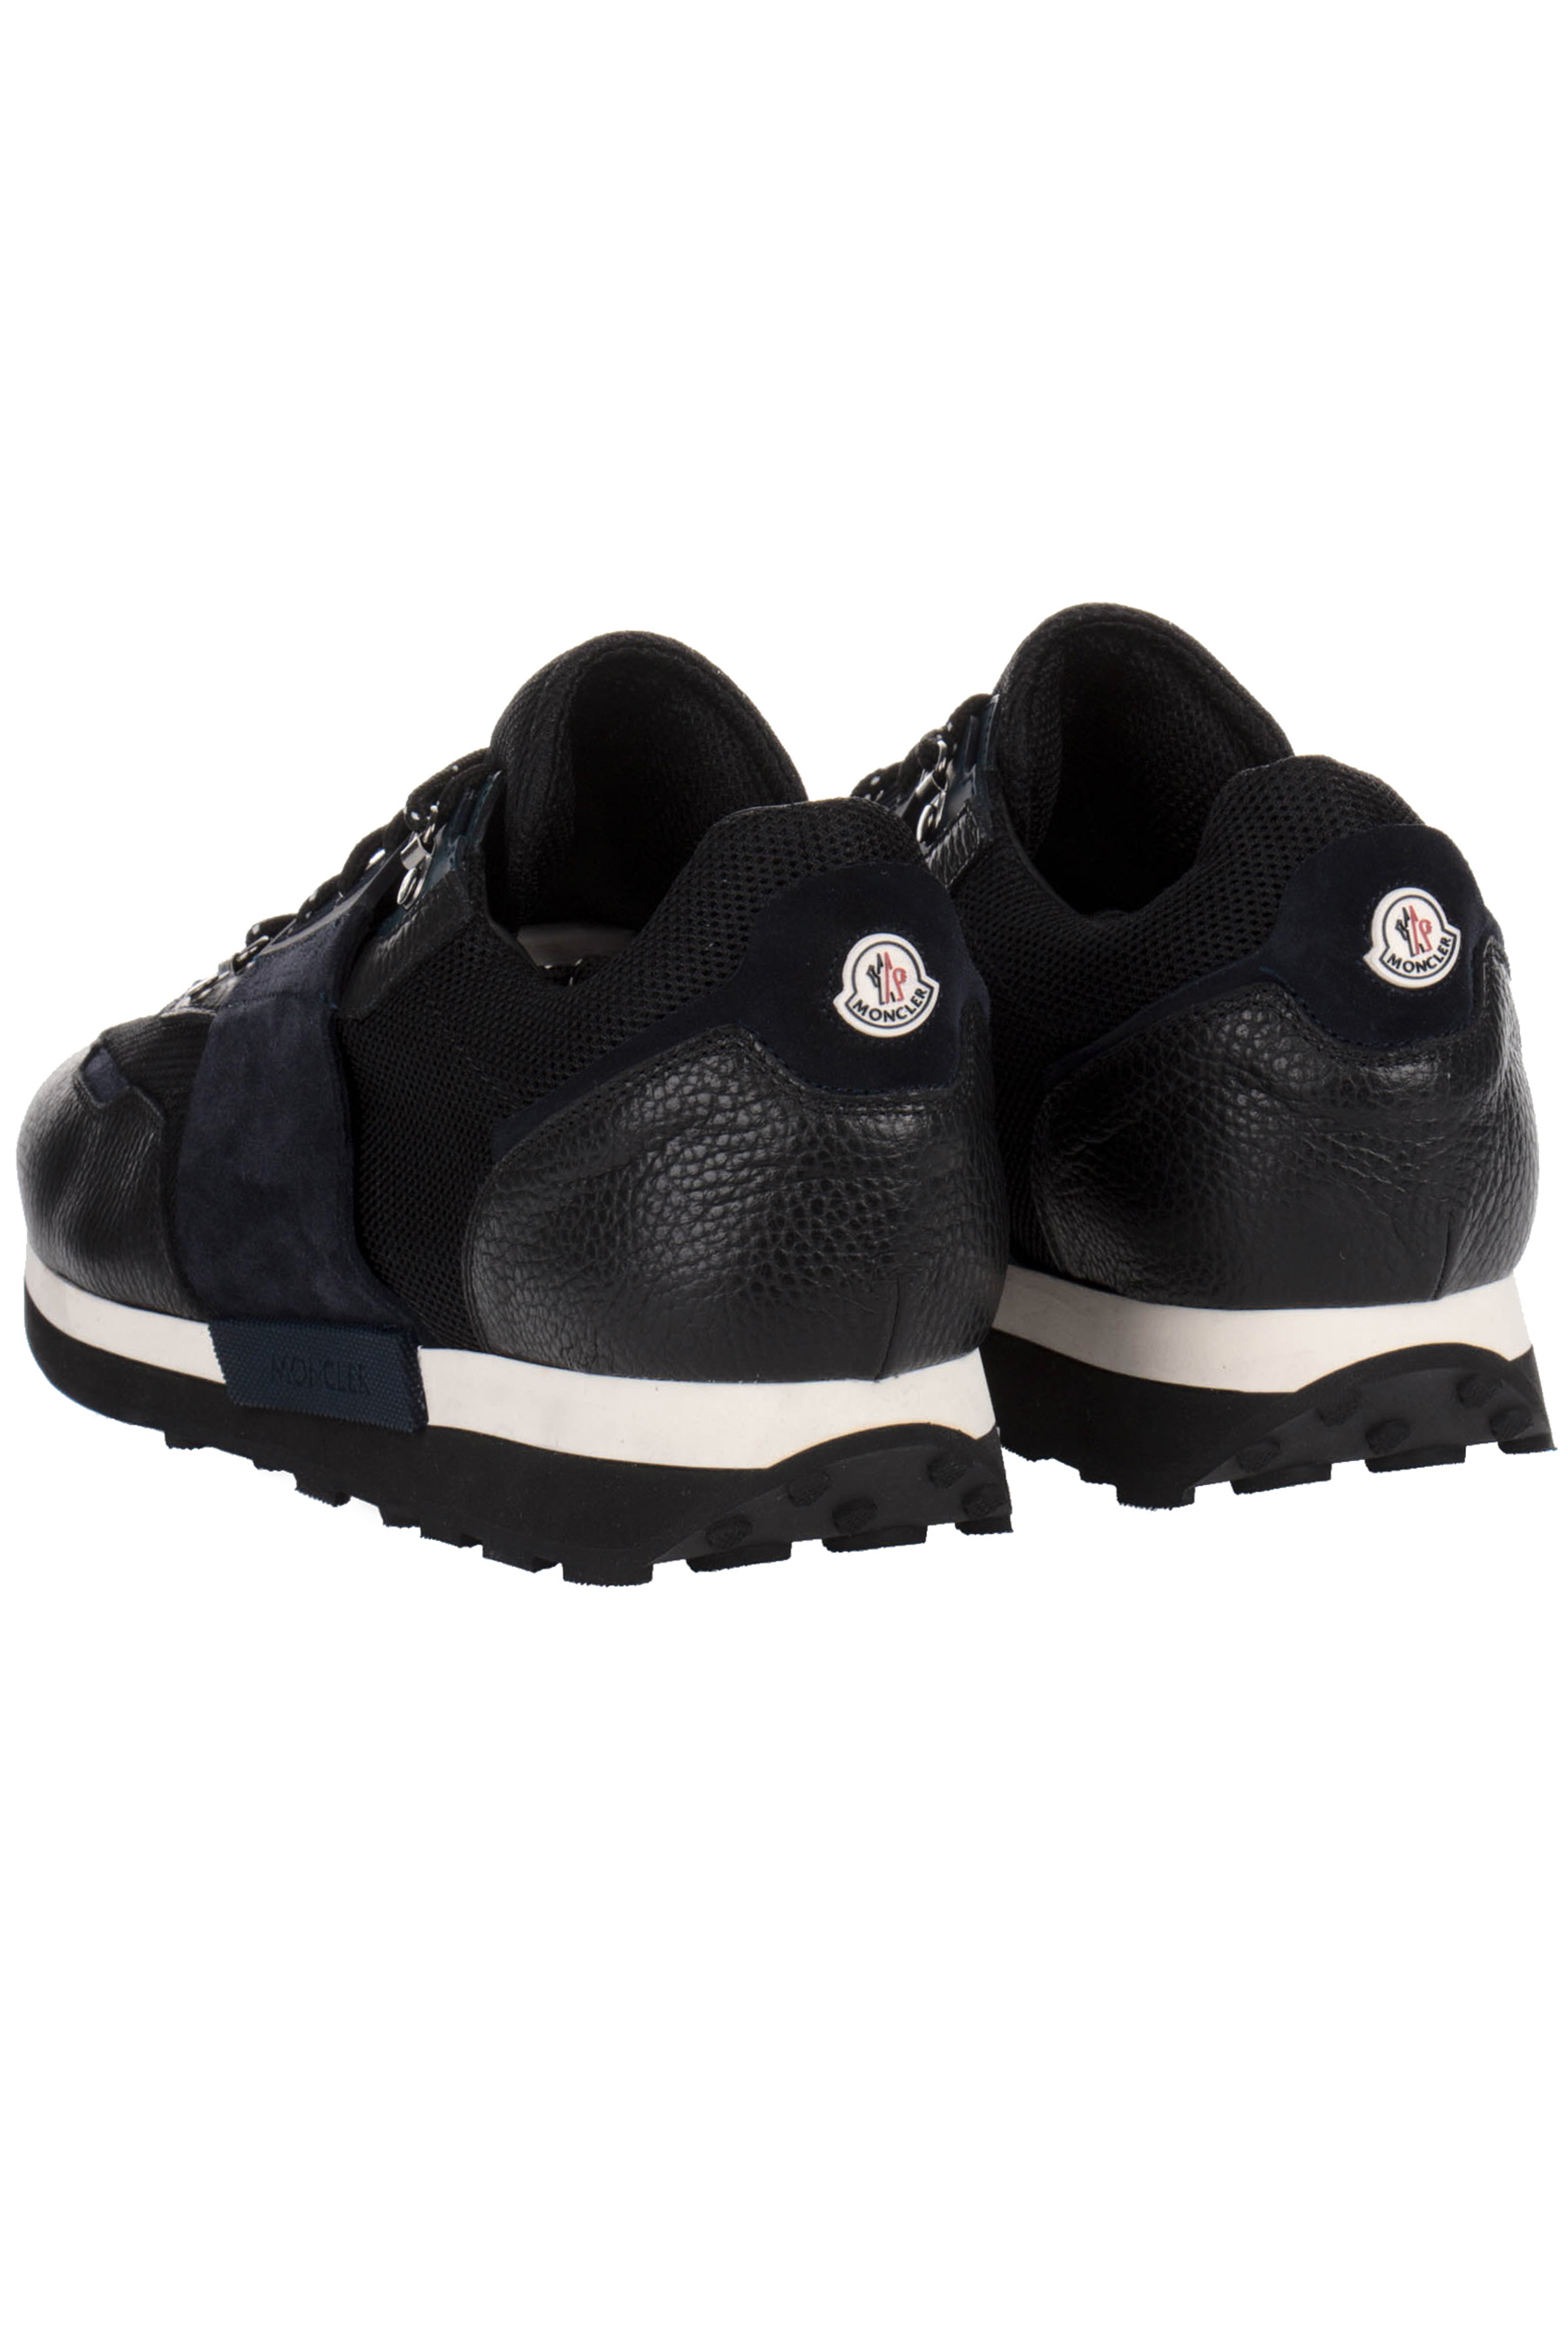 MONCLER Sneakers   Sneakers   Shoes